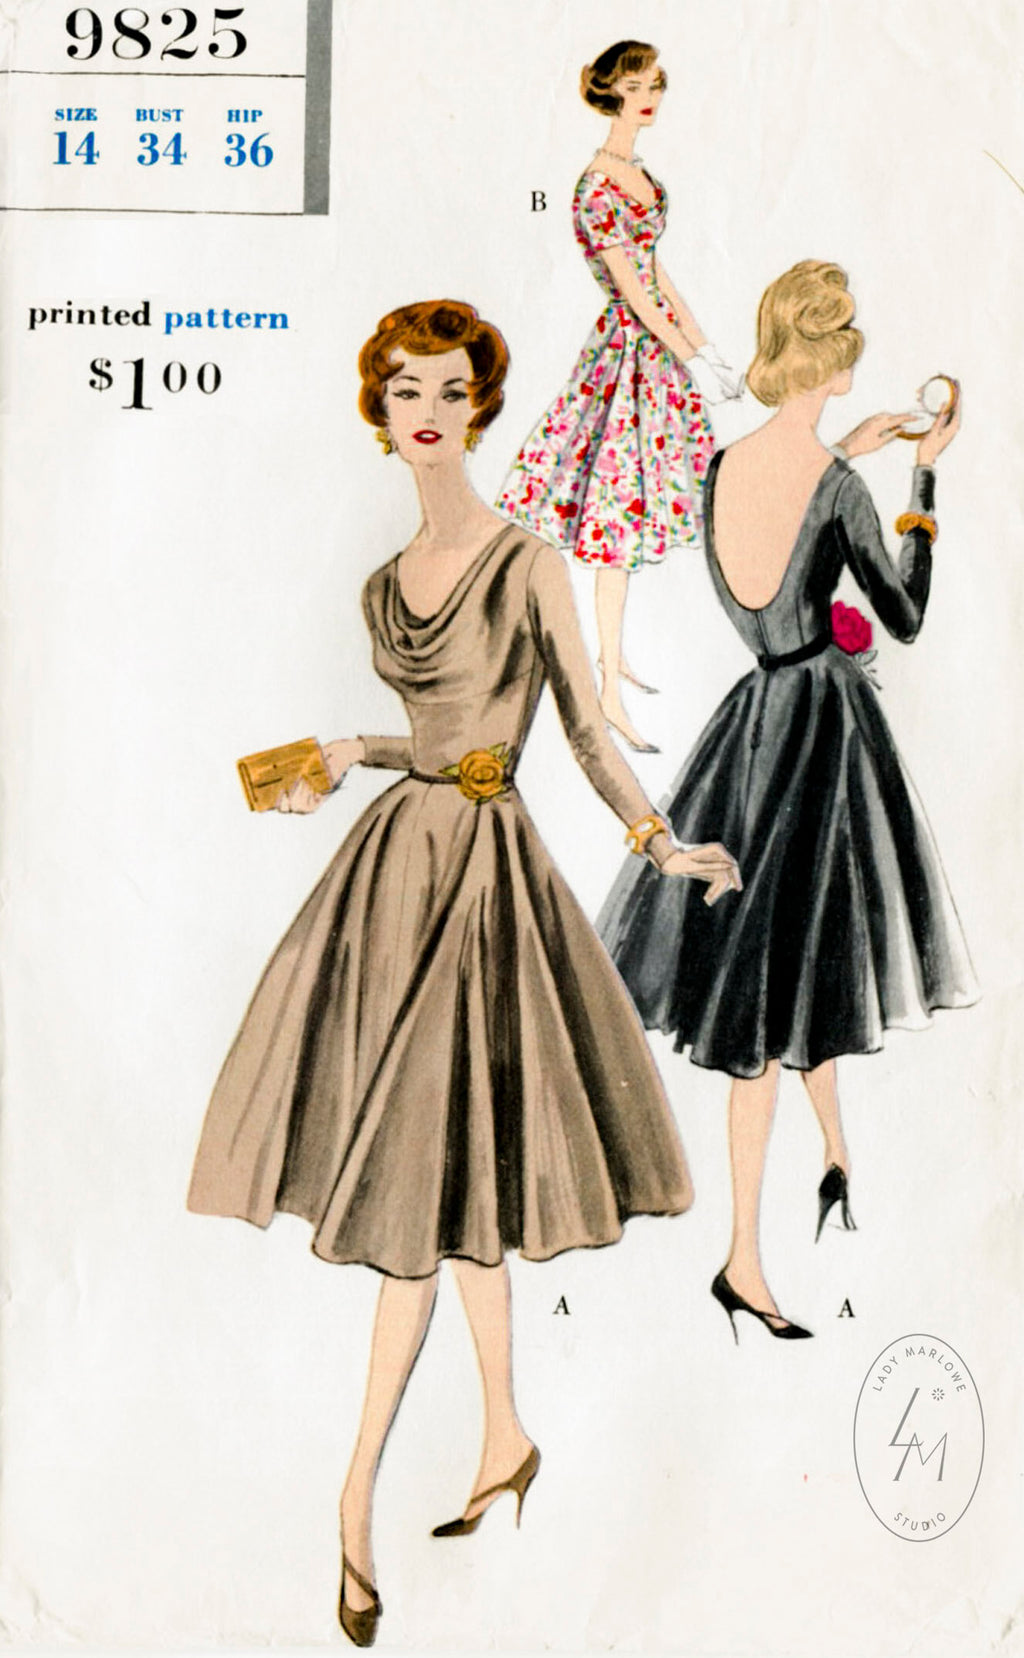 Vogue 9825 1950s dress sewing pattern vintage gown